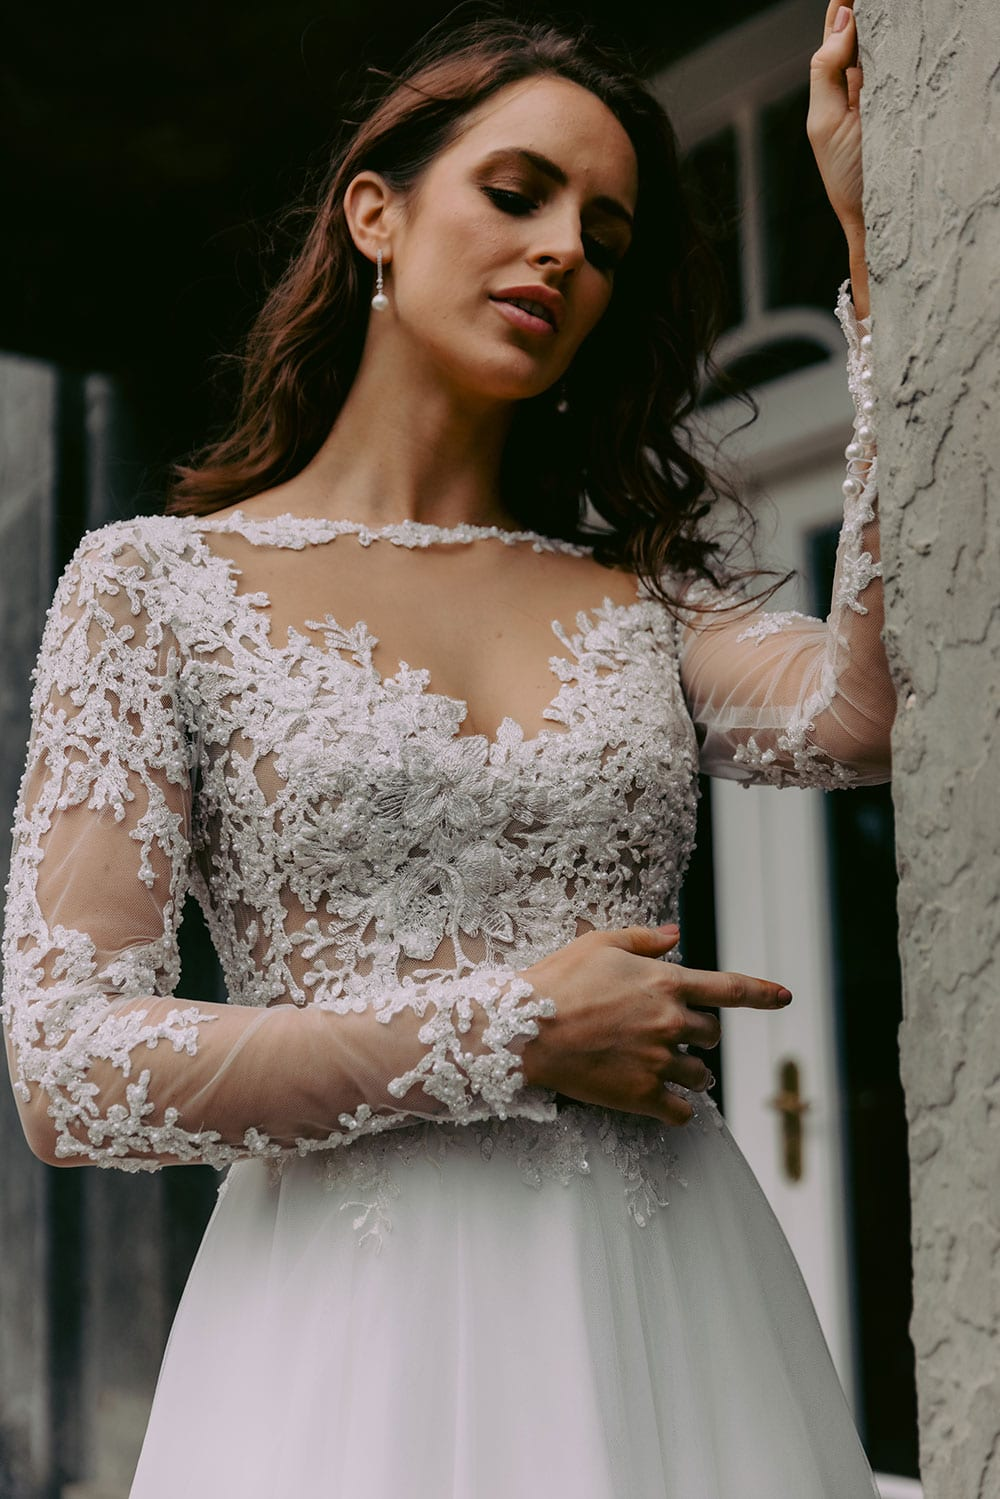 Maia Wedding gown from Vinka Design - This feminine & romantic wedding dress features beautiful pearl & bead embroidery over 3D lace. Long sleeves with pearl buttons, illusion neckline and skirt of dreamy layers of soft tulle. Model wearing gown showing lace bodice dress detail outside heritage building in Clevedon, near Auckland.